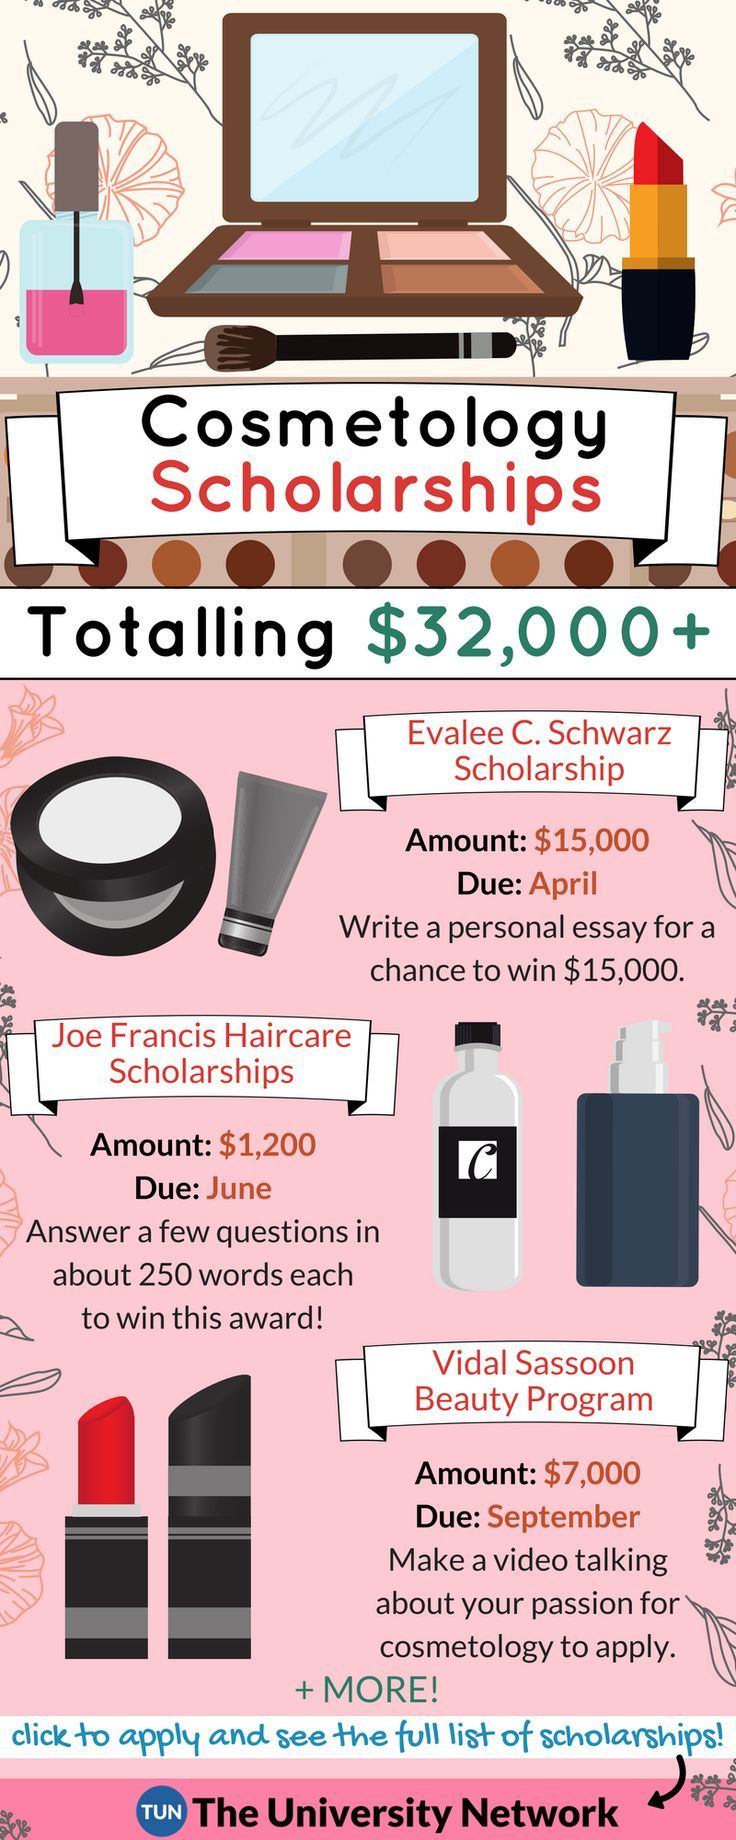 Scholarship essay for cosmetology